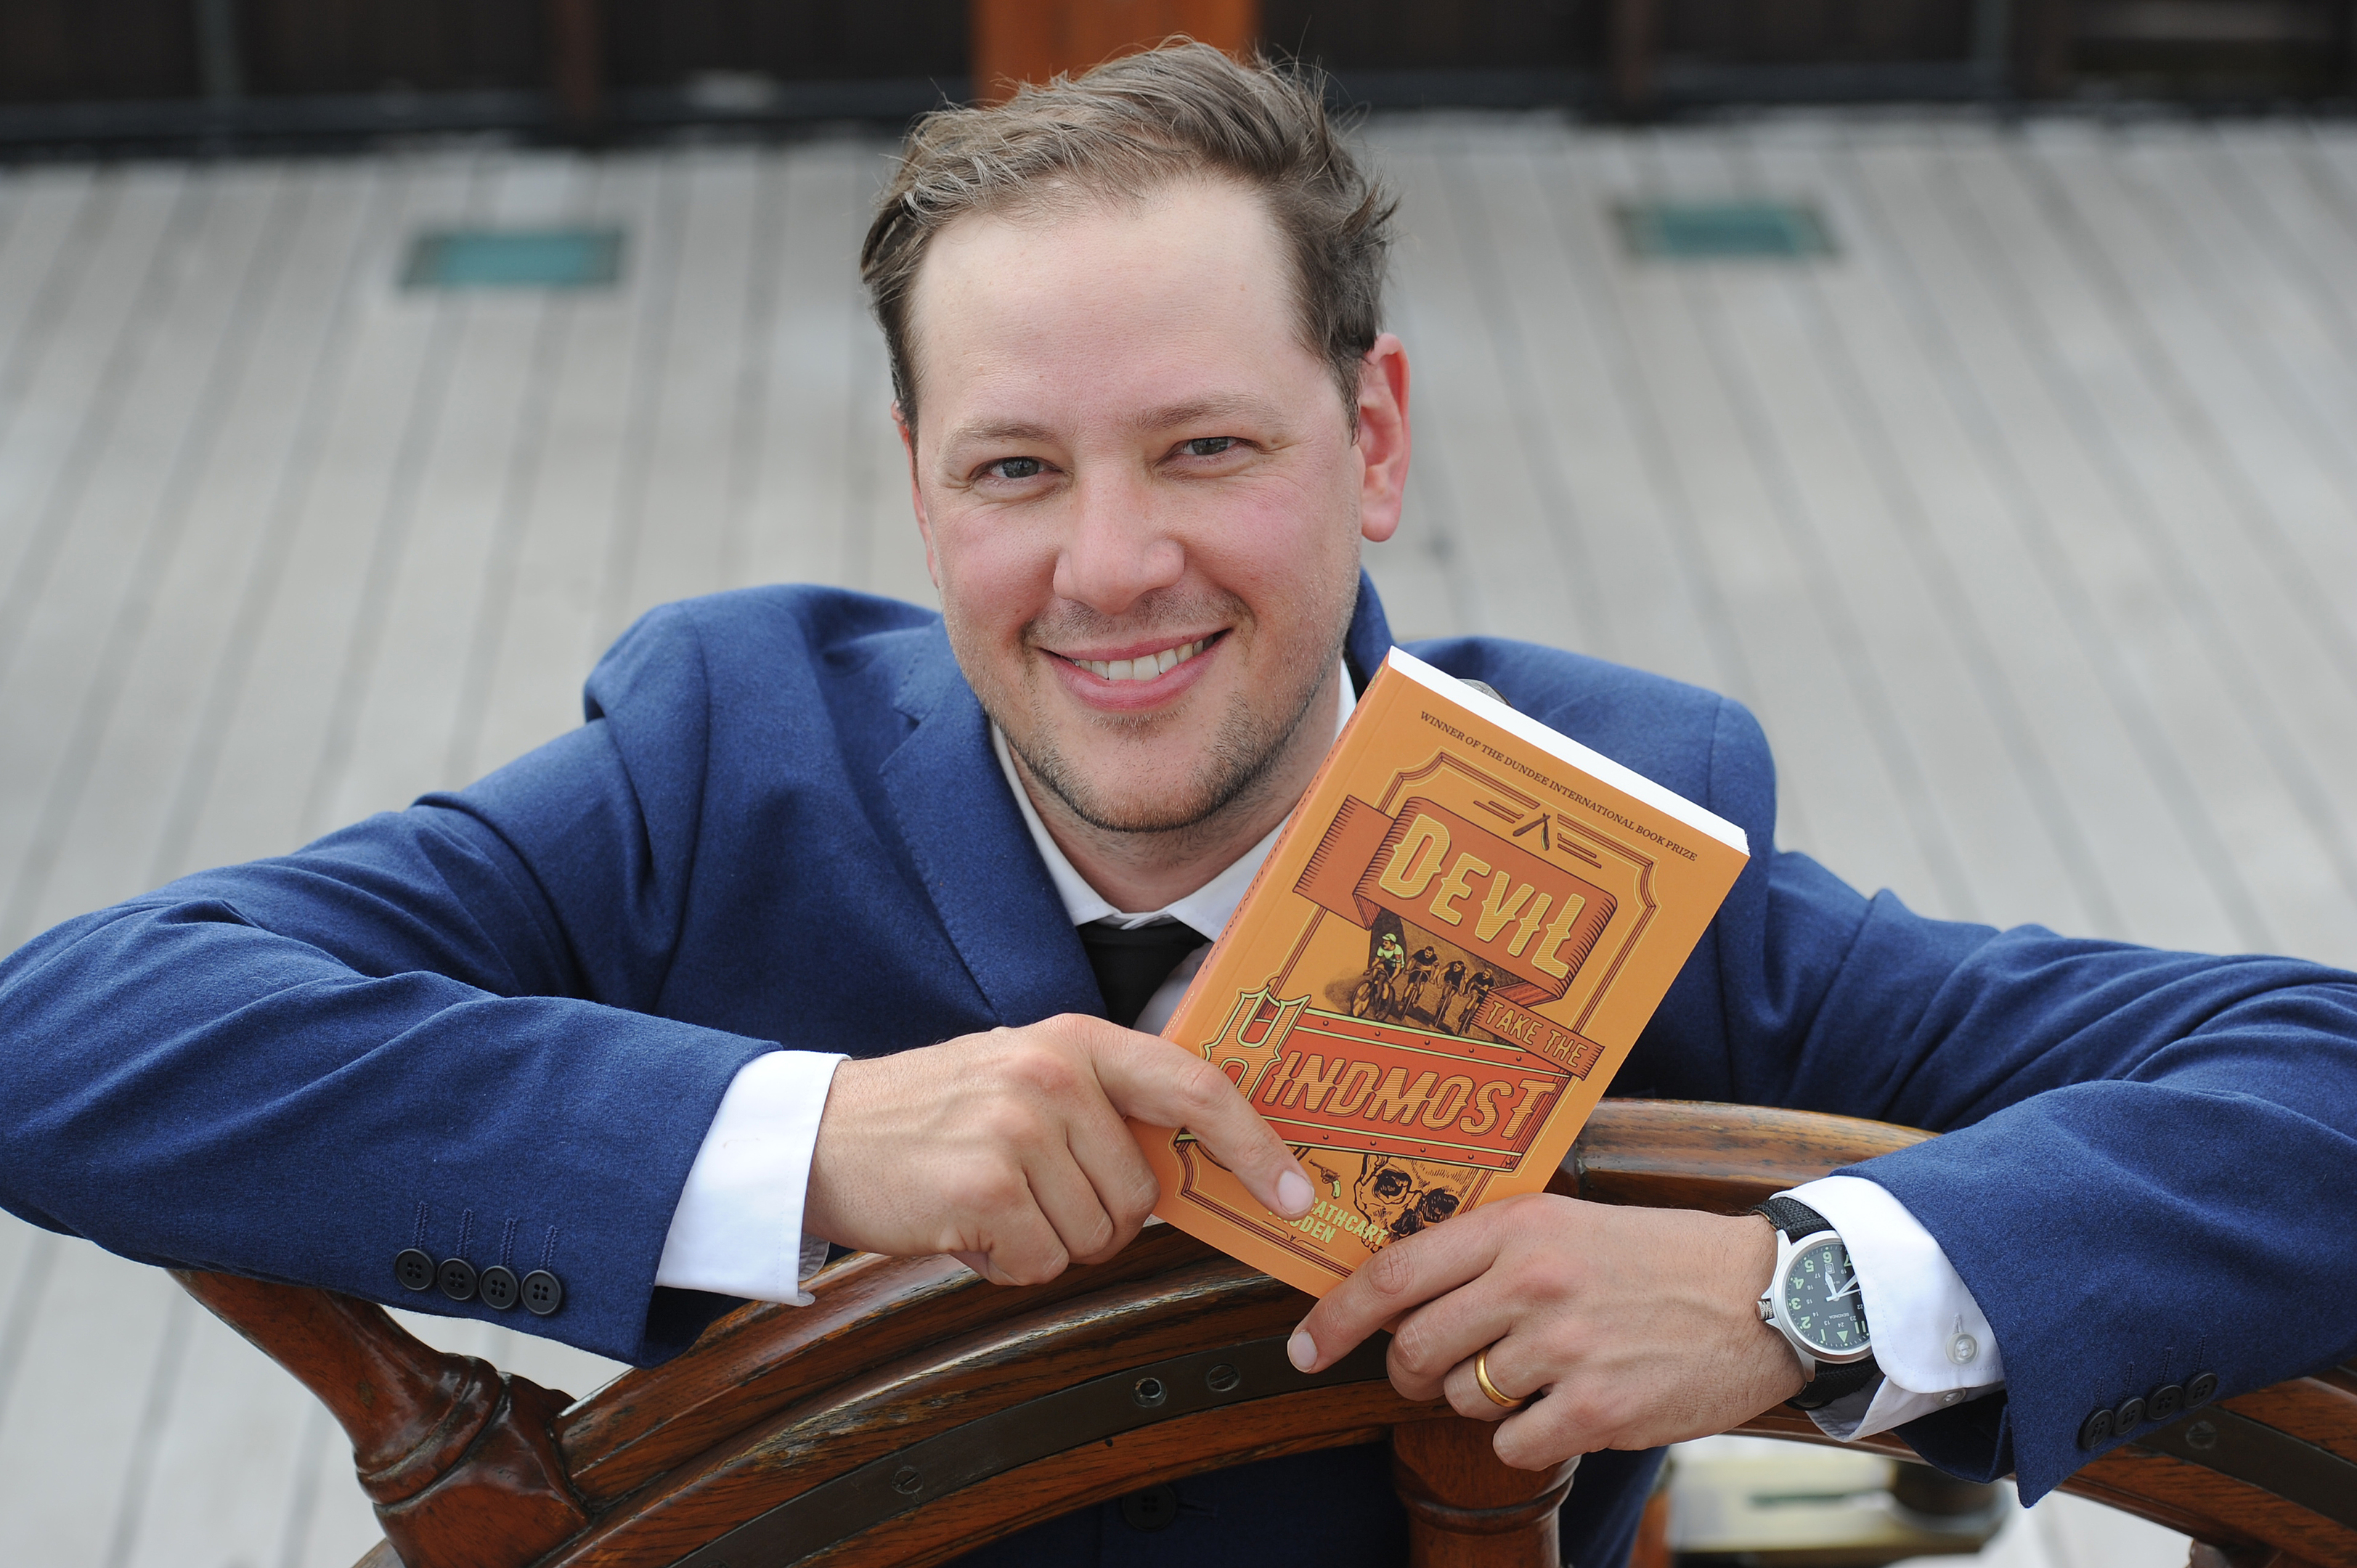 Last year's winner of the Dundee International Book Prize, Martin Cathcart Froden, launched his prizewinning publication Devil Take the Hindmost on the RSS Discovery.